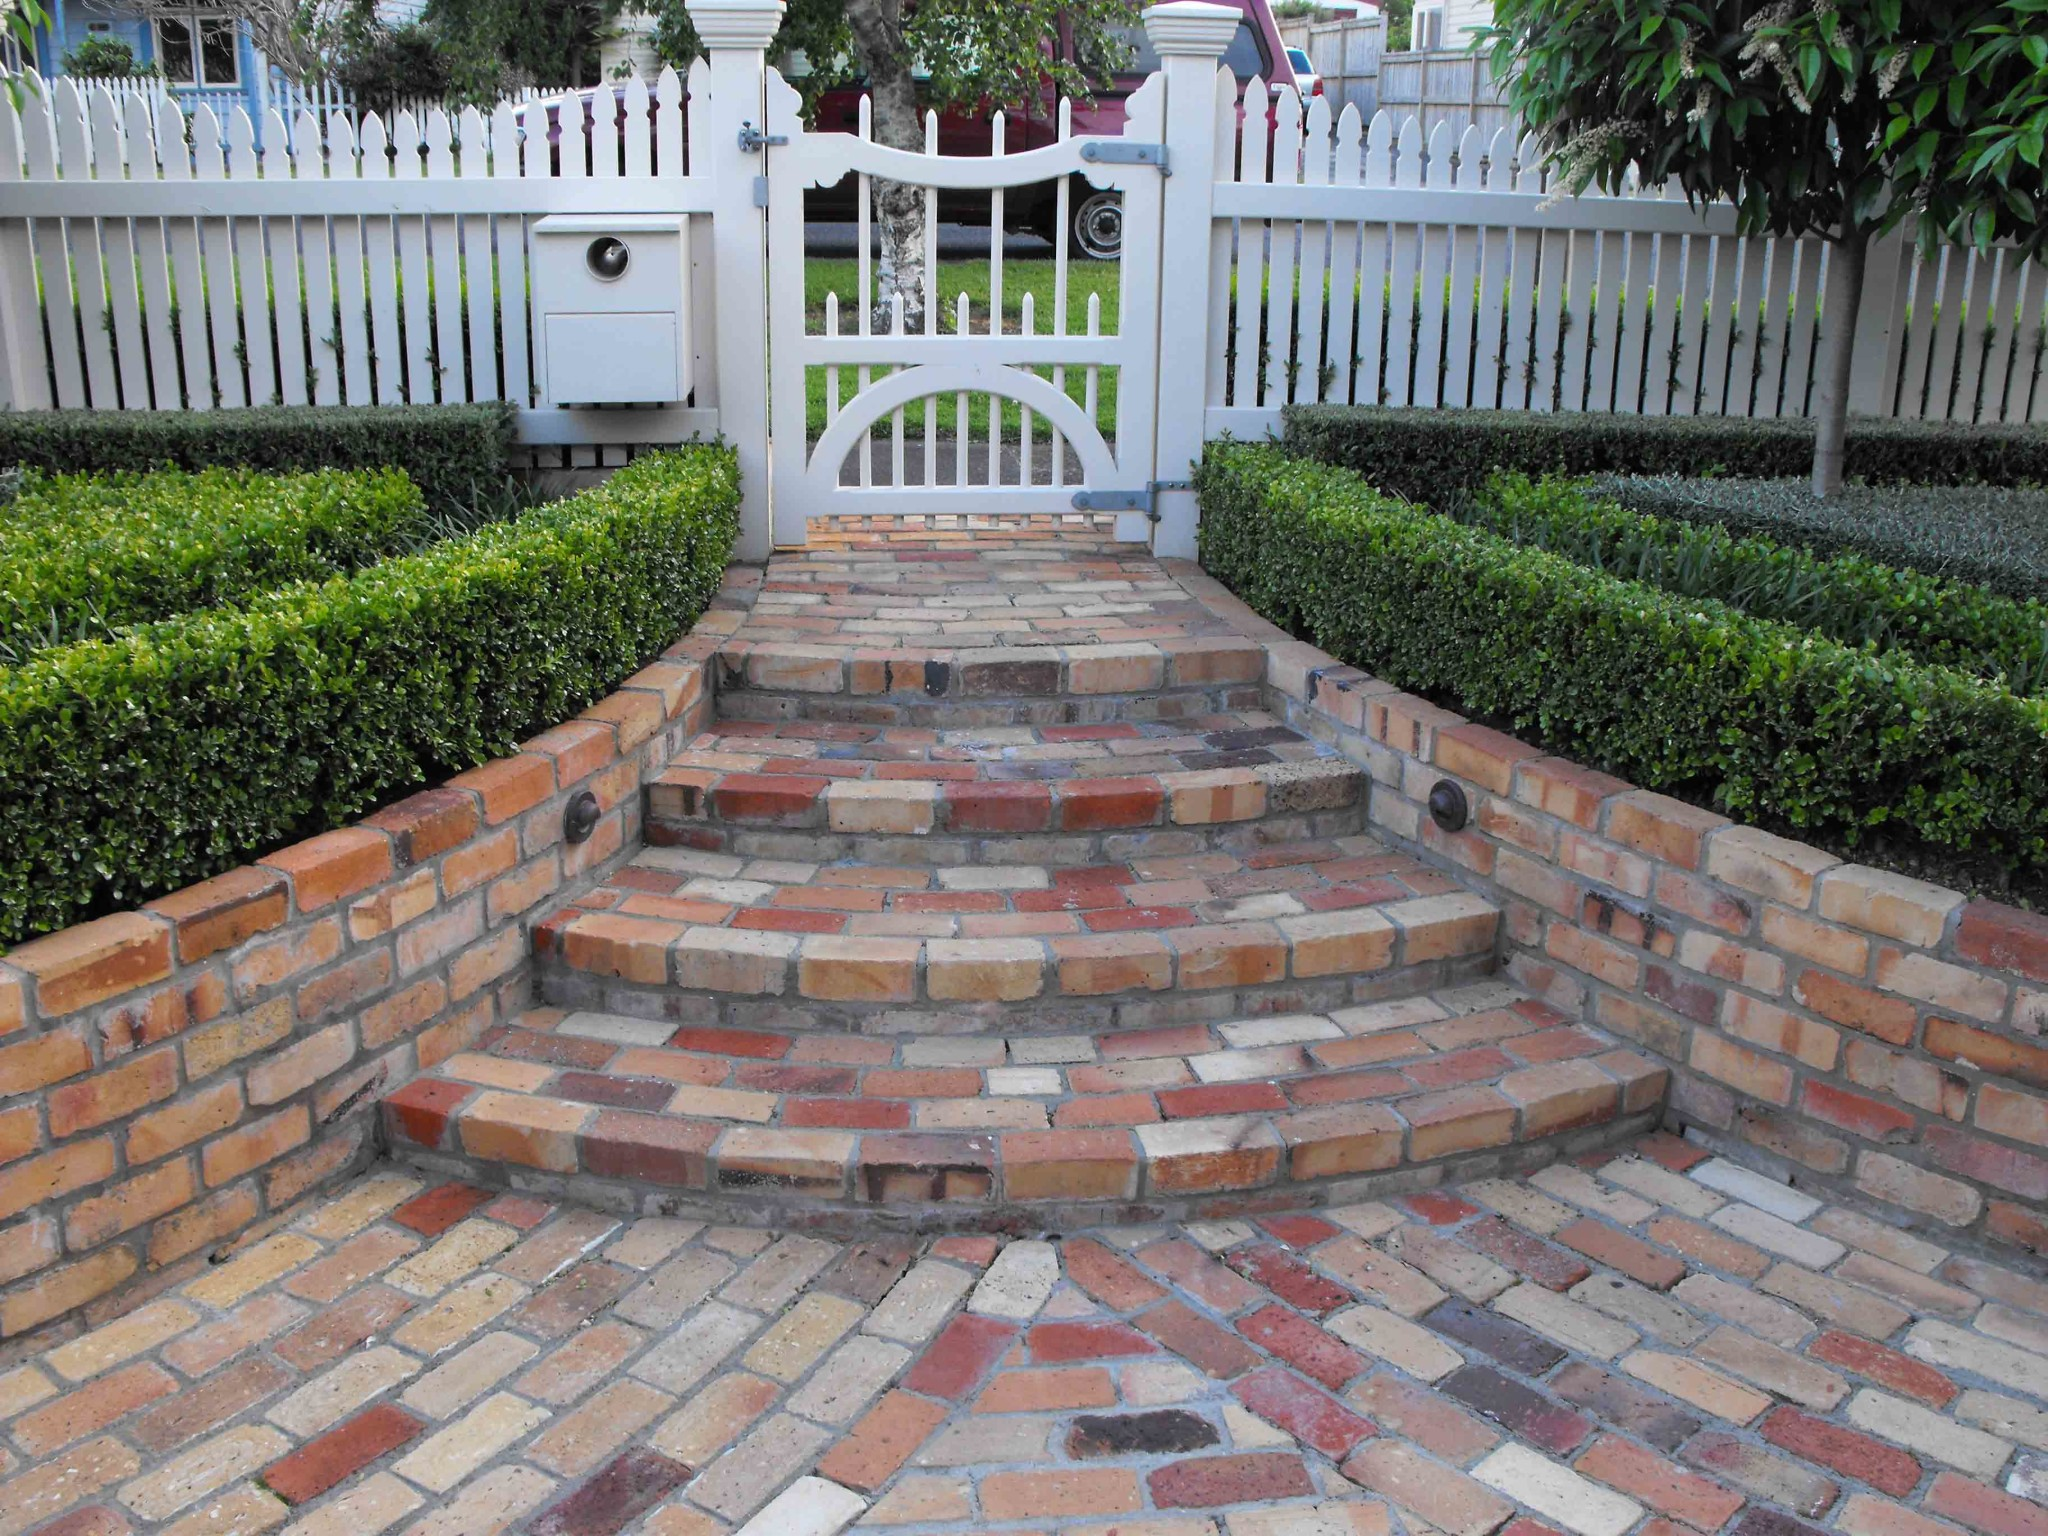 Landscaping design jmarvinhandyman for Landscaping bricks